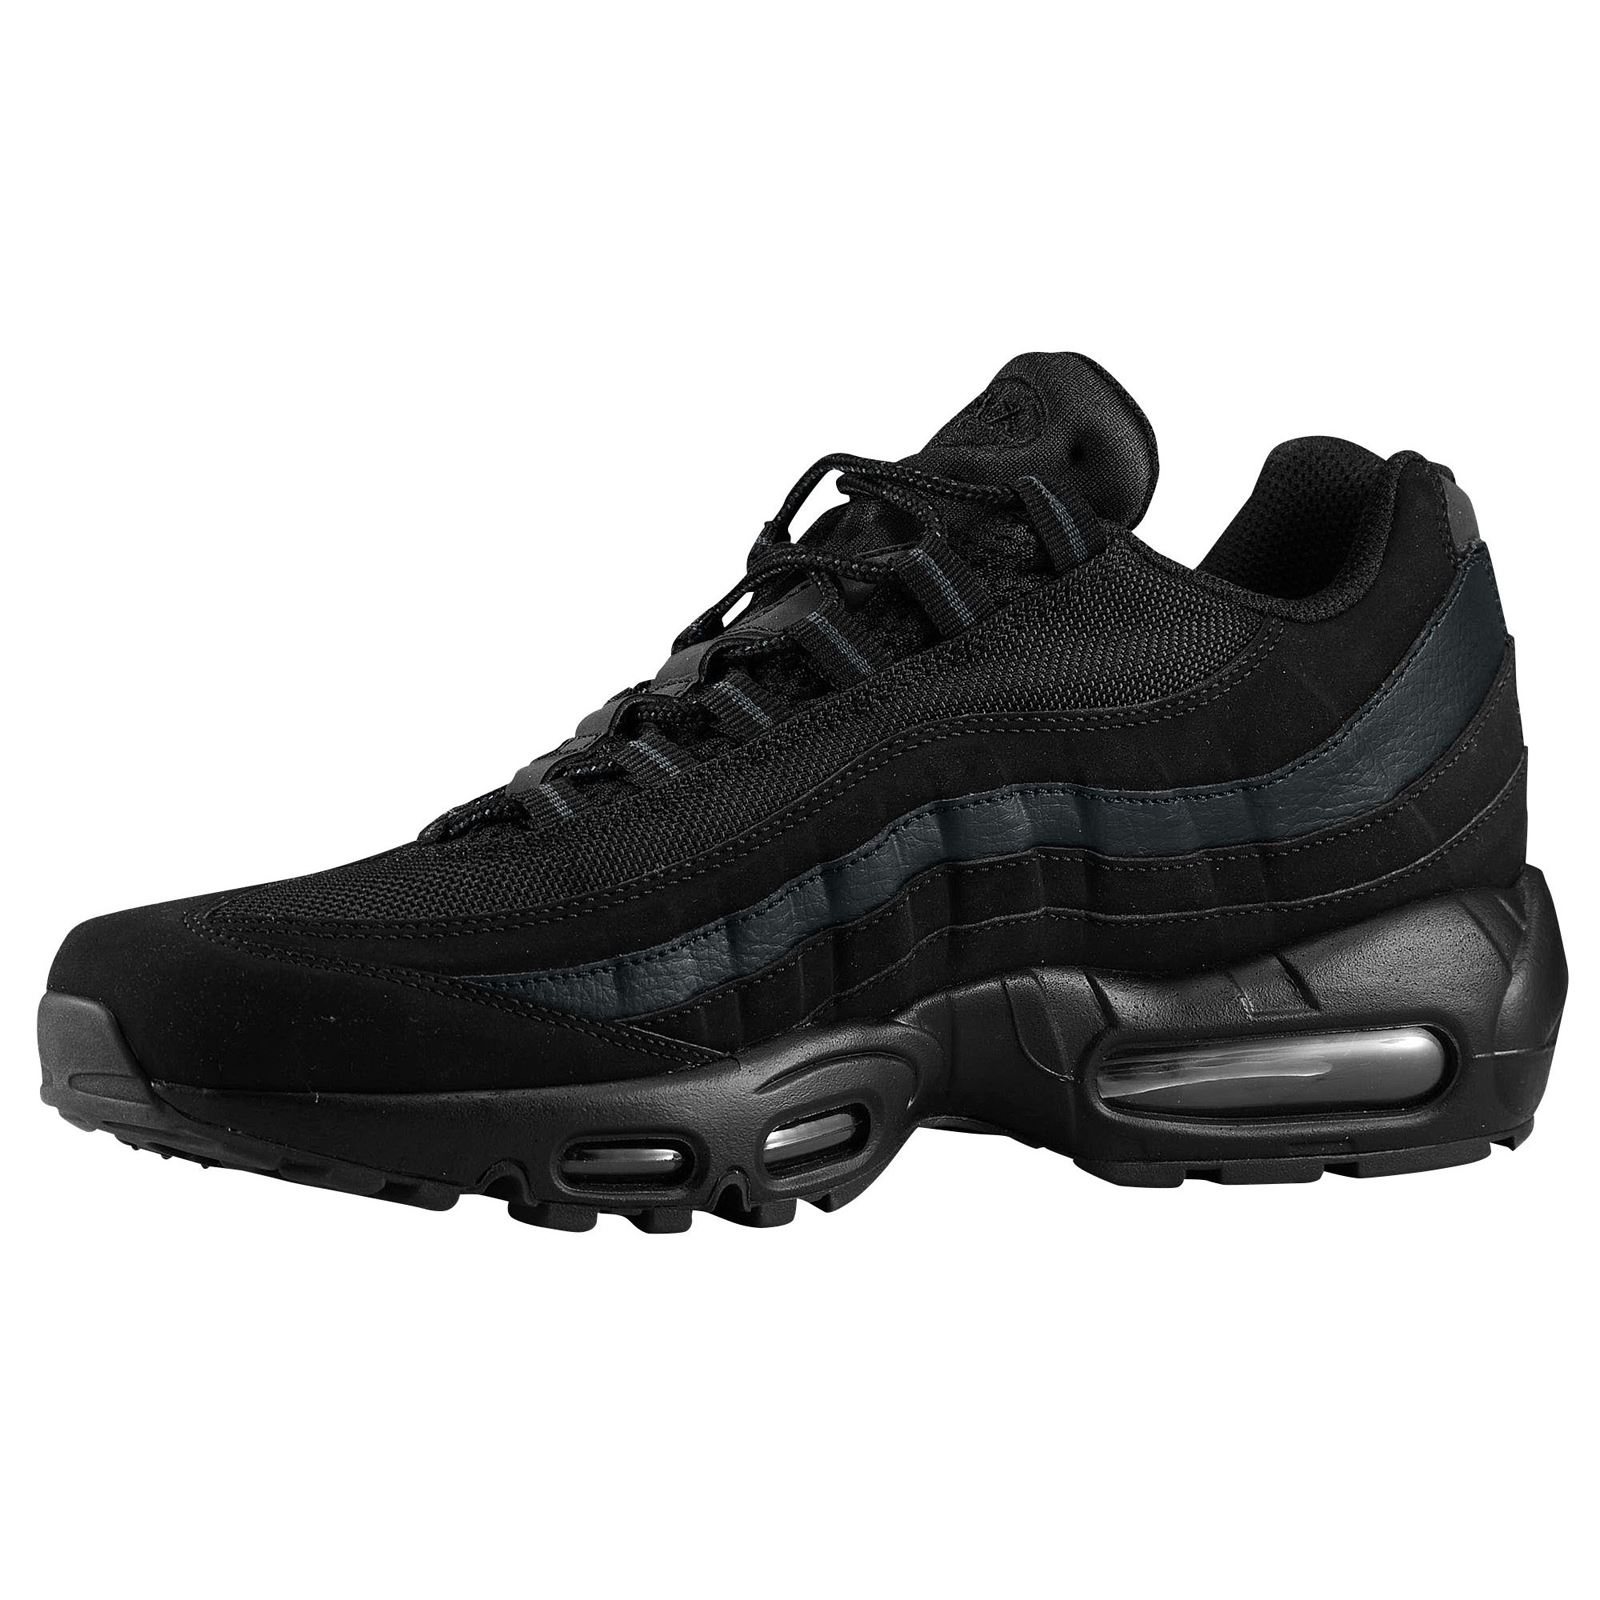 1b3df1e6c8ab air max 95 leather and satin Nike SB Zoom Stefan Janoski ...